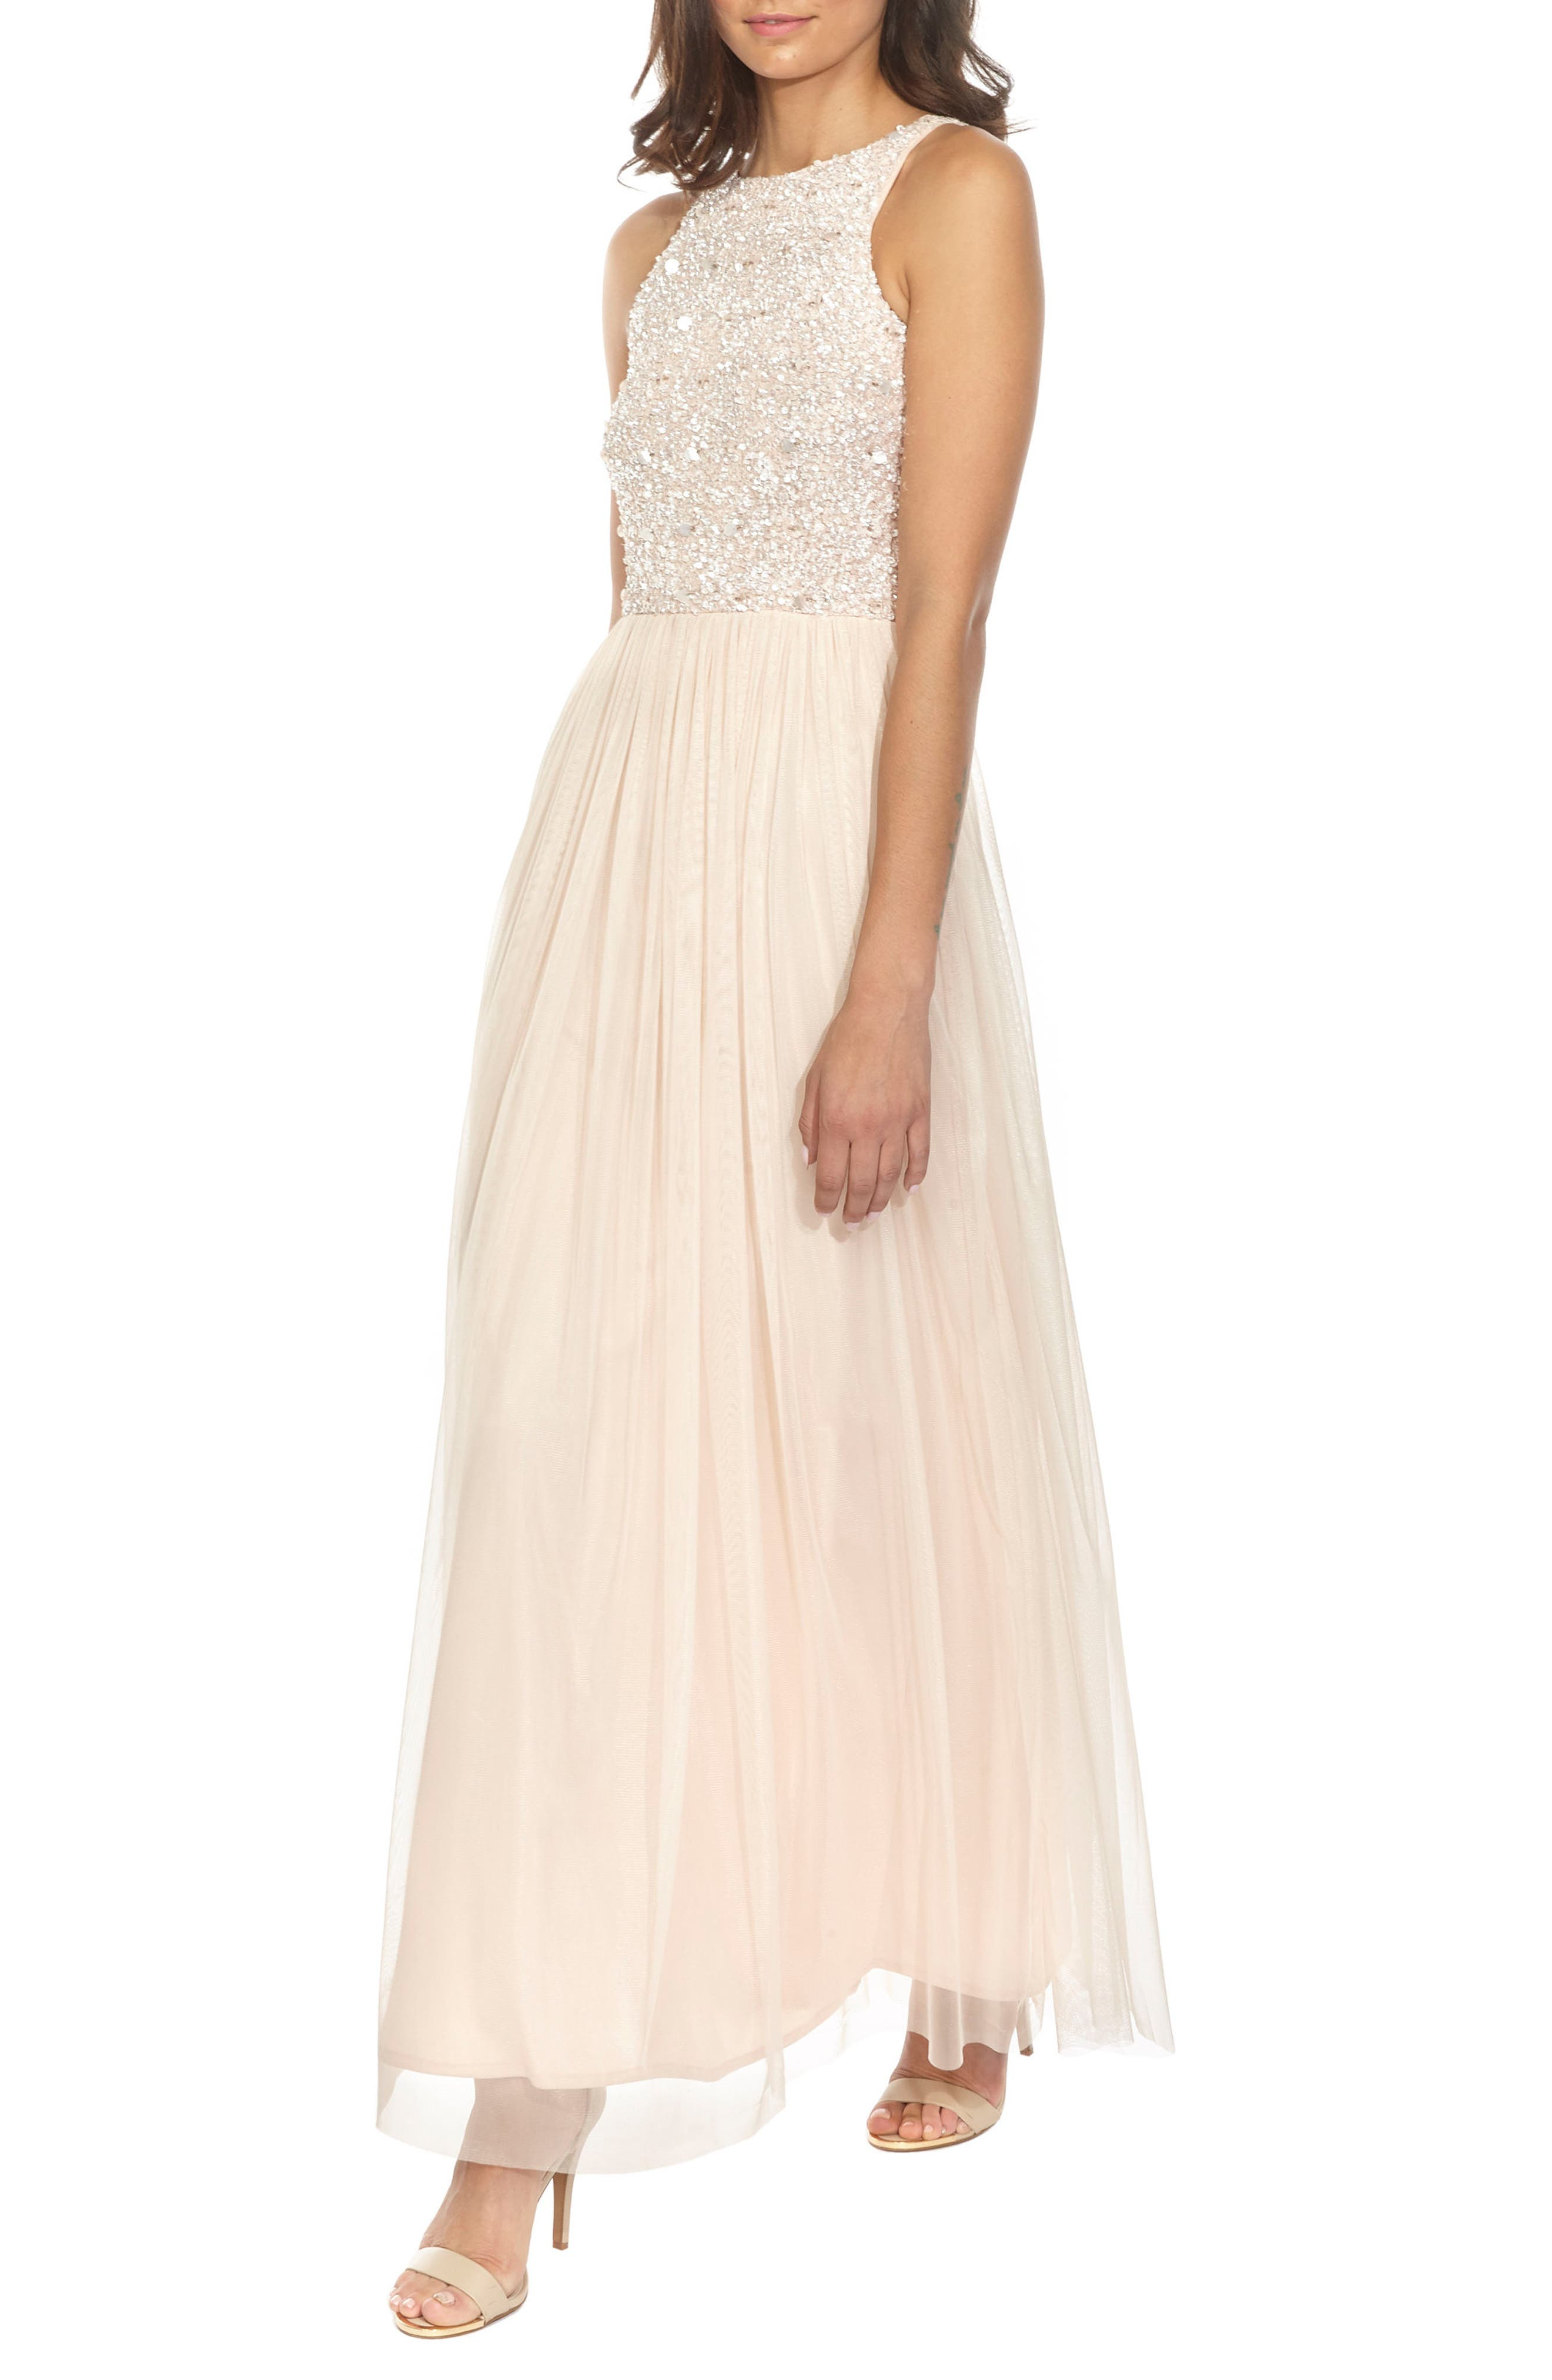 Picasso Embellished Bodice Maxi Dress,                             Alternate thumbnail 4, color,                             Nude